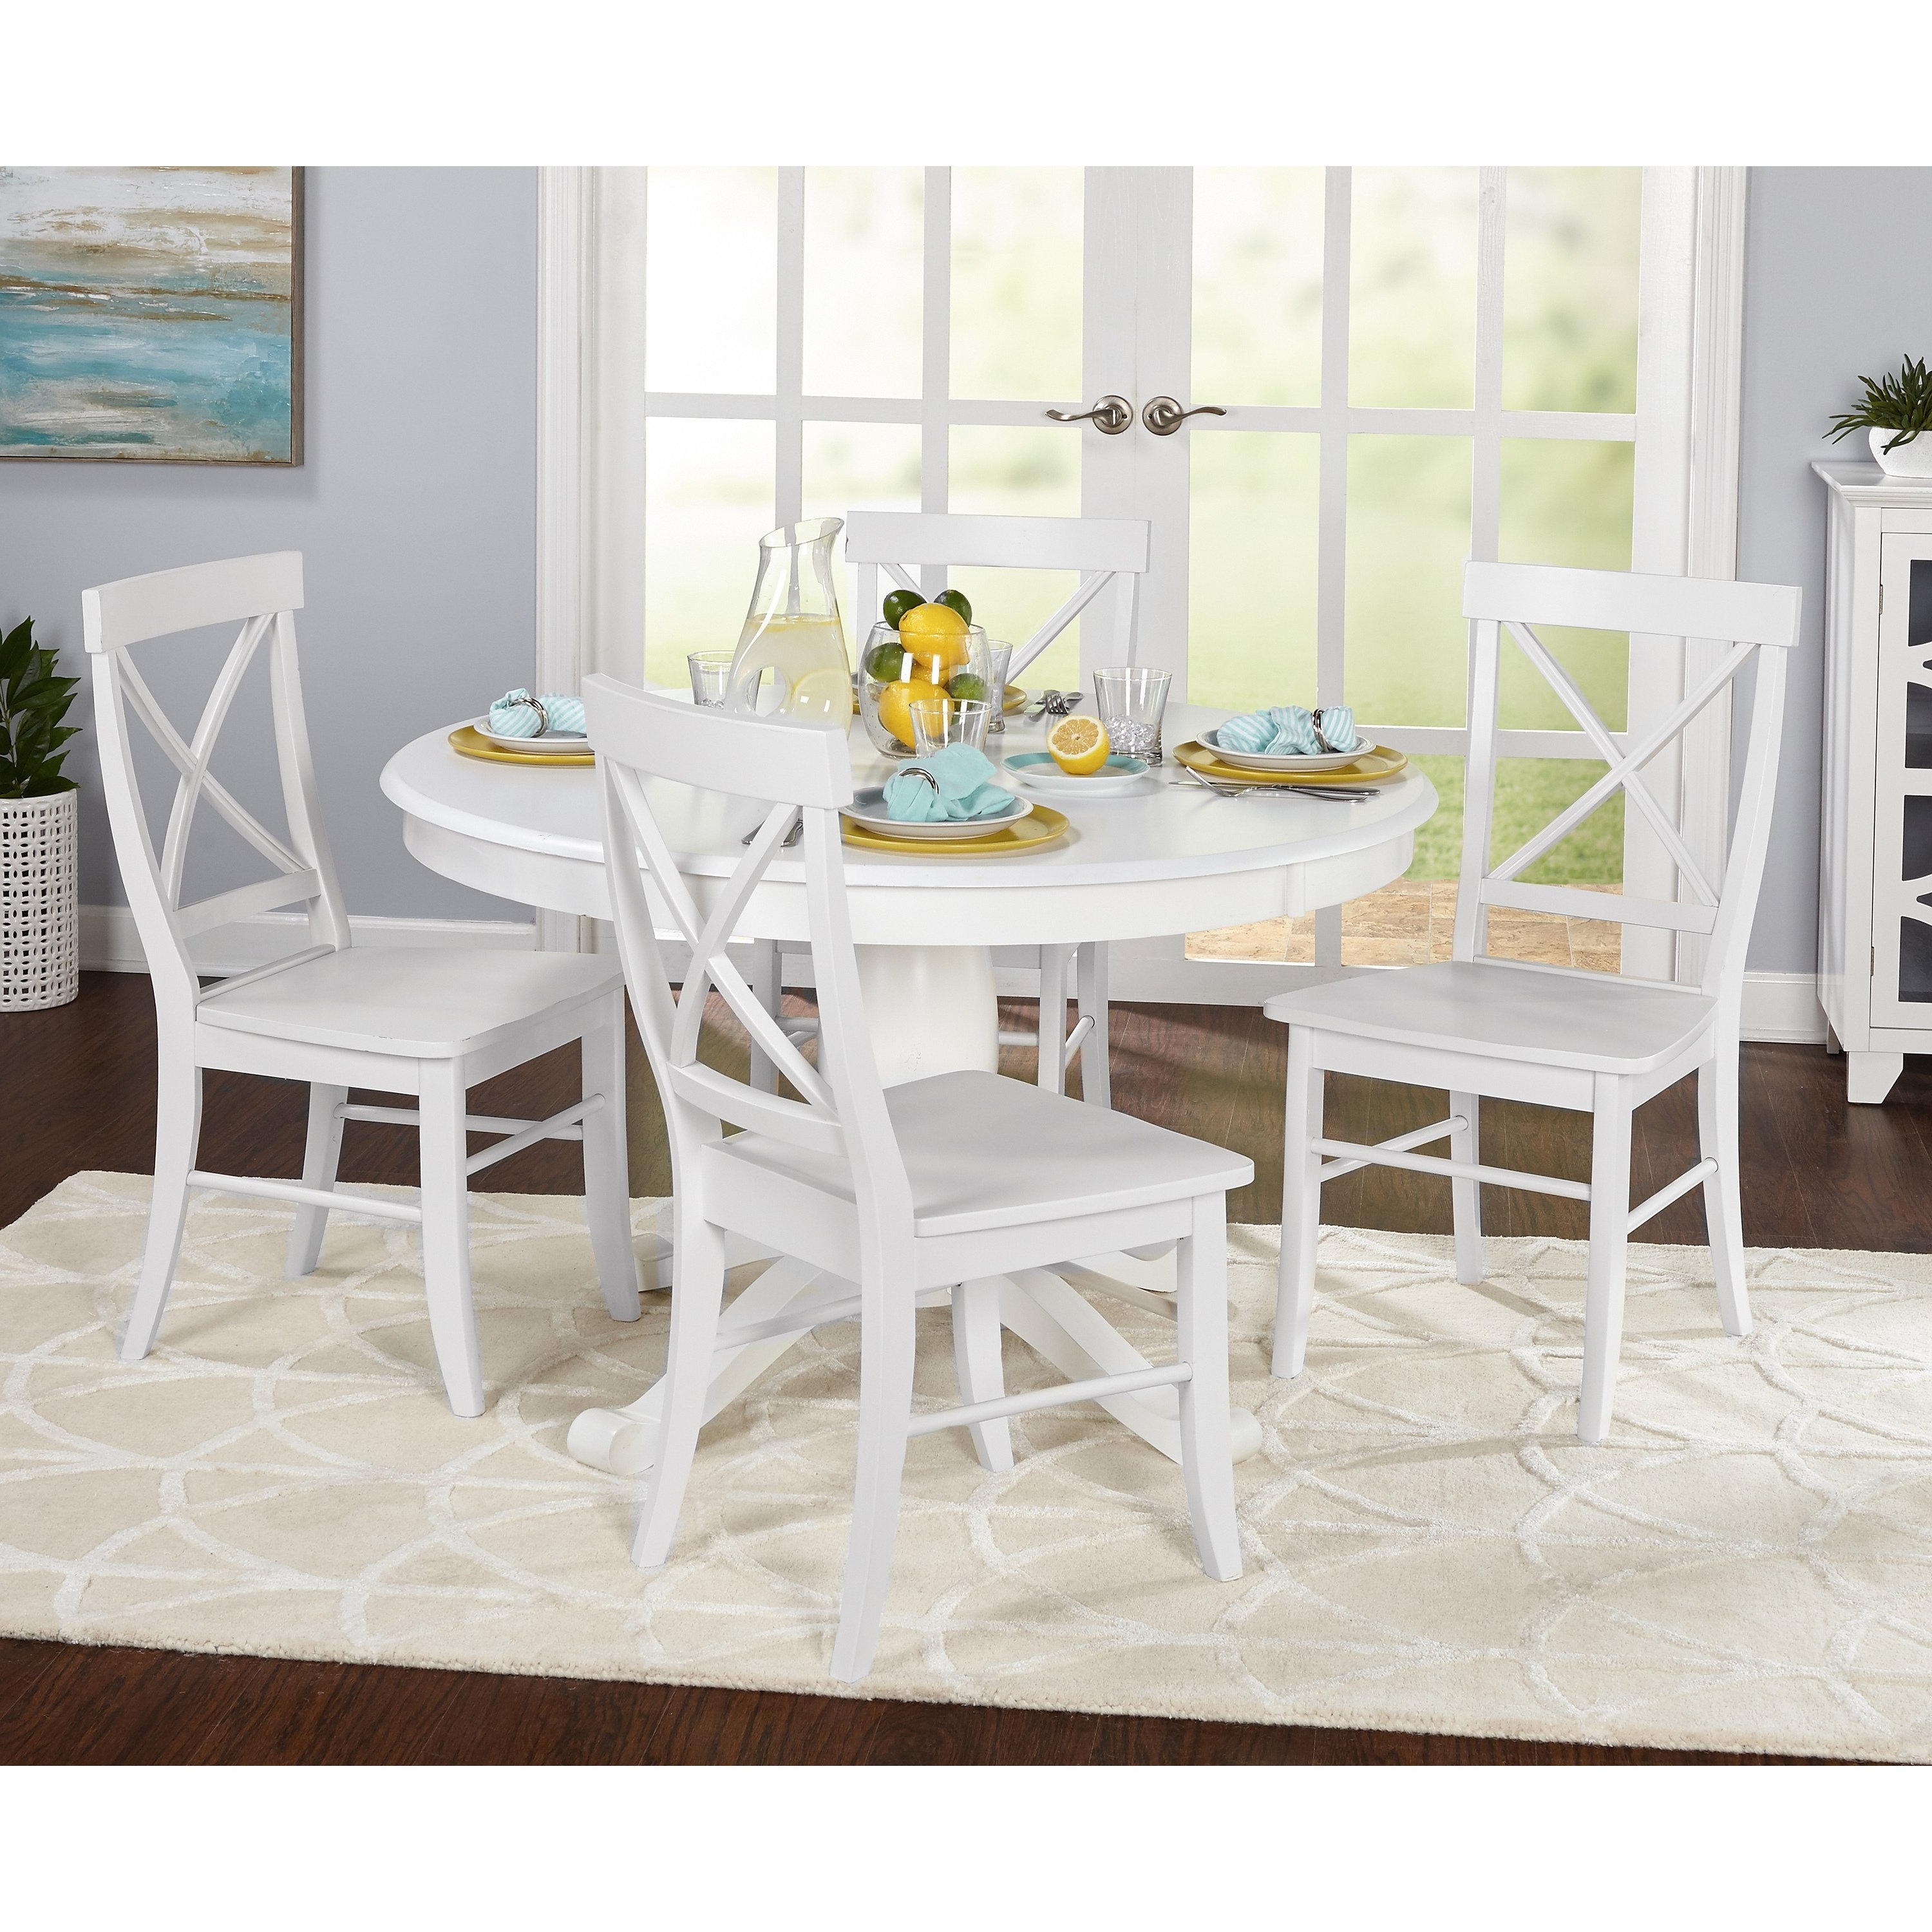 Dawson Dining Tables With Well Known Shop Simple Living 5 Piece Dawson Dining Set – Free Shipping Today (View 6 of 25)